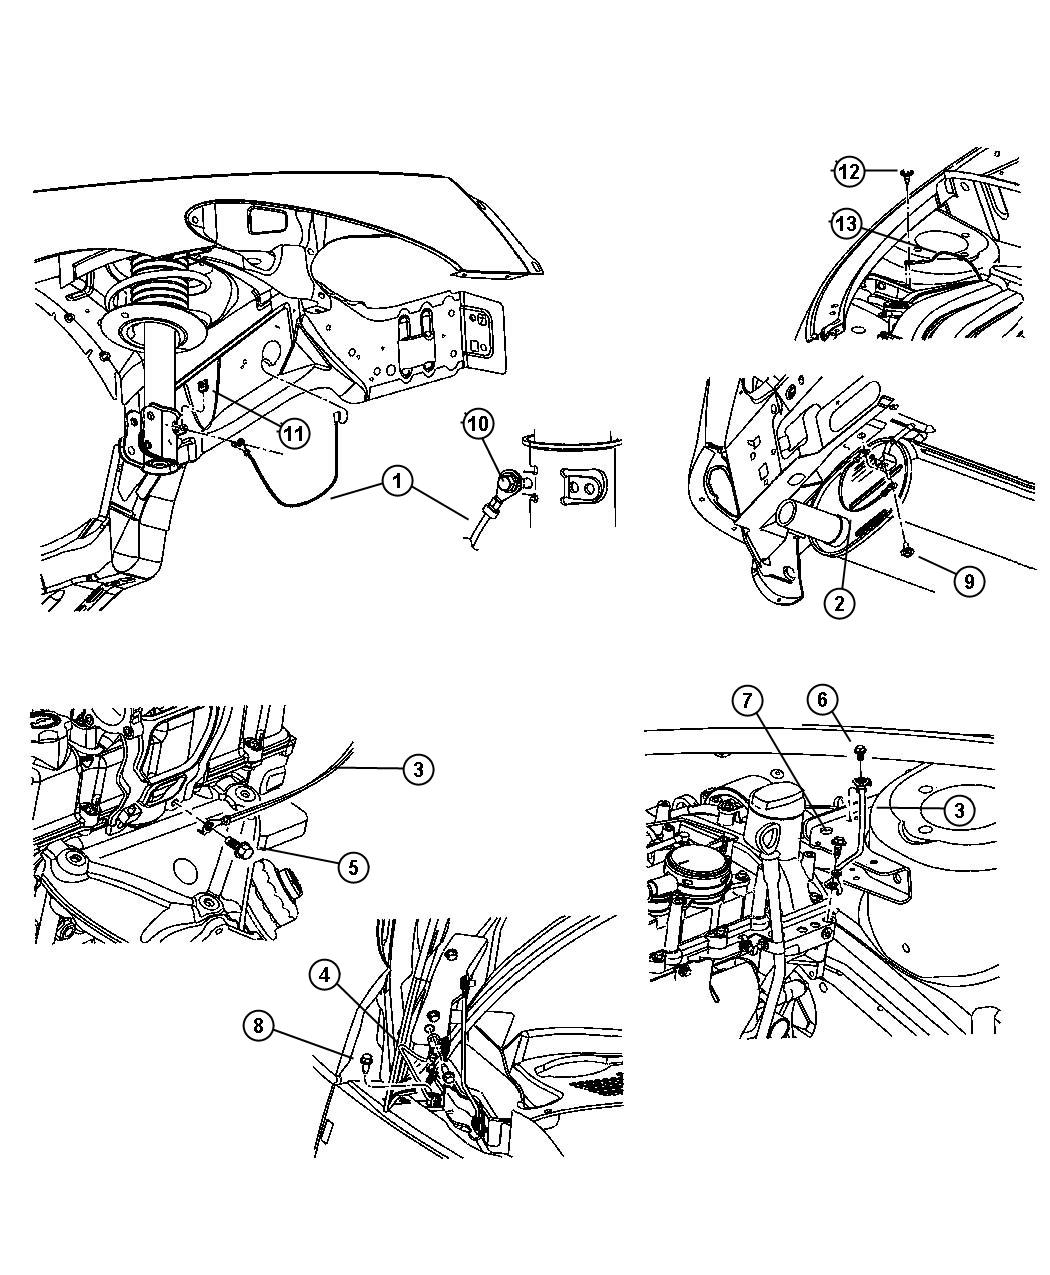 pt cruiser frame diagram wiring diagrams